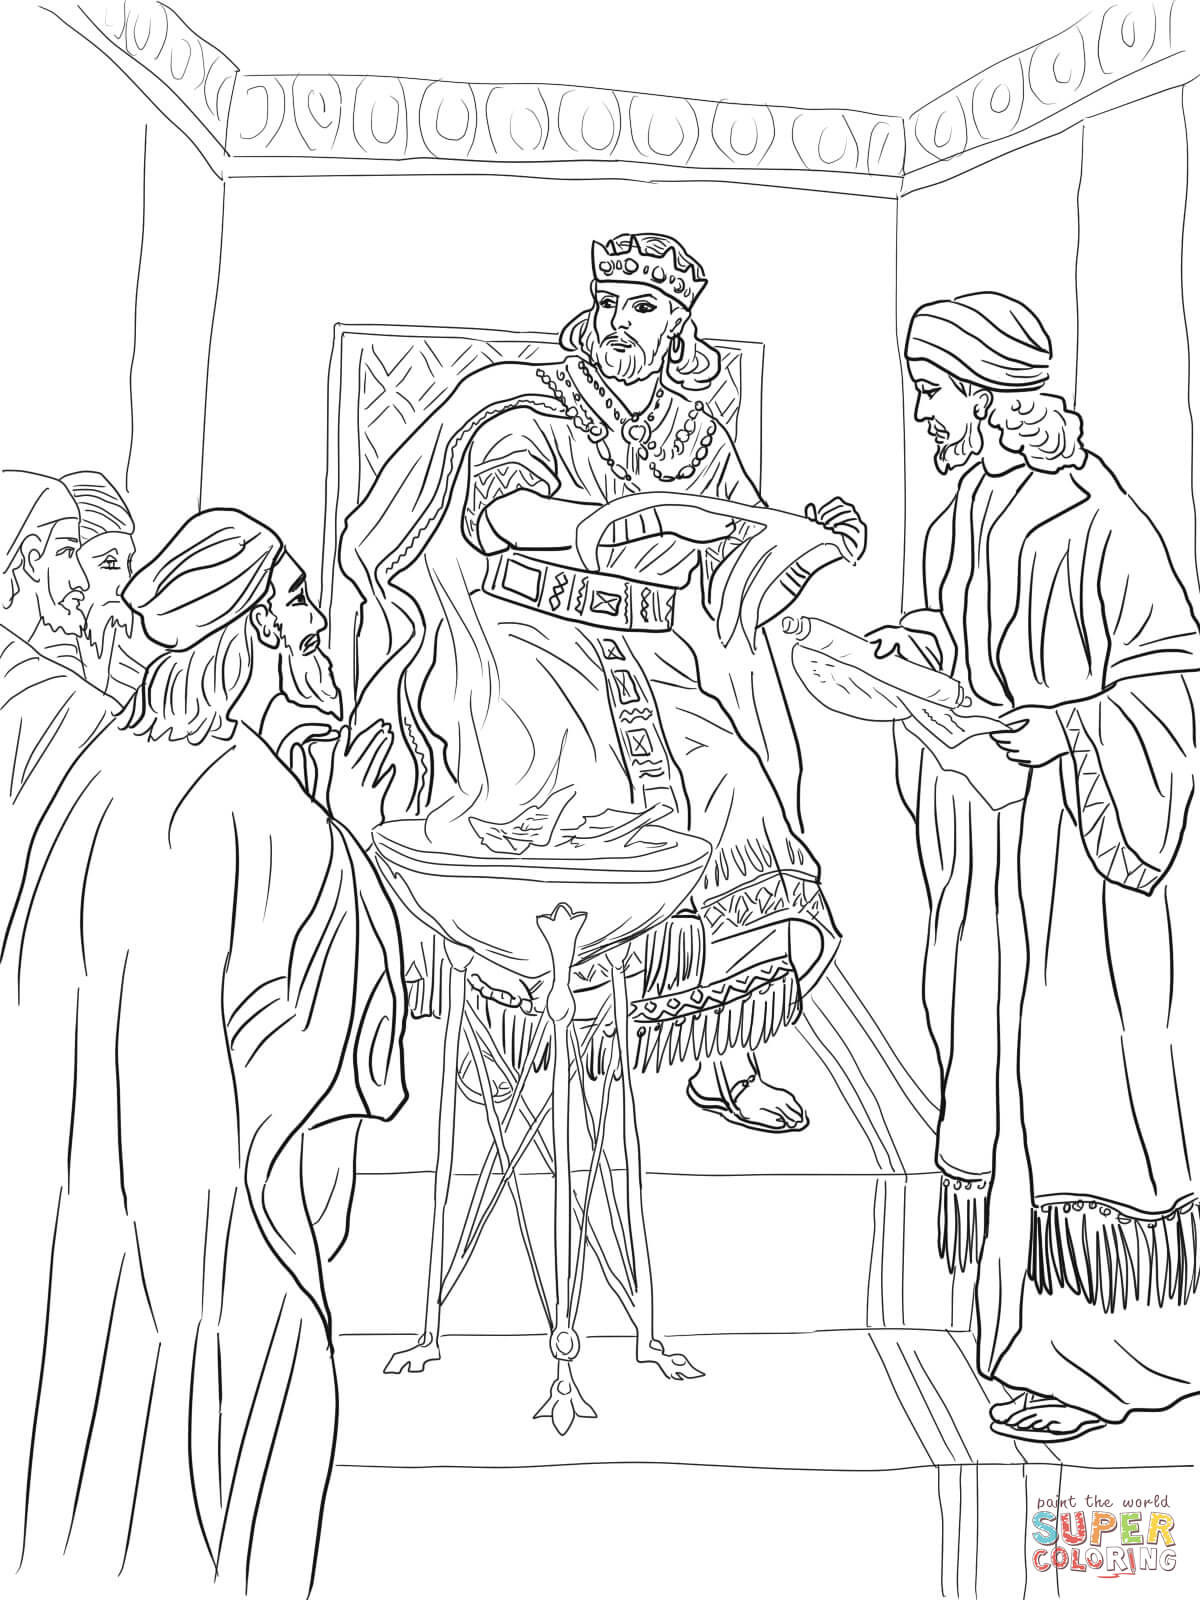 king josiah coloring page king josiah to print or download for free with images josiah king page coloring